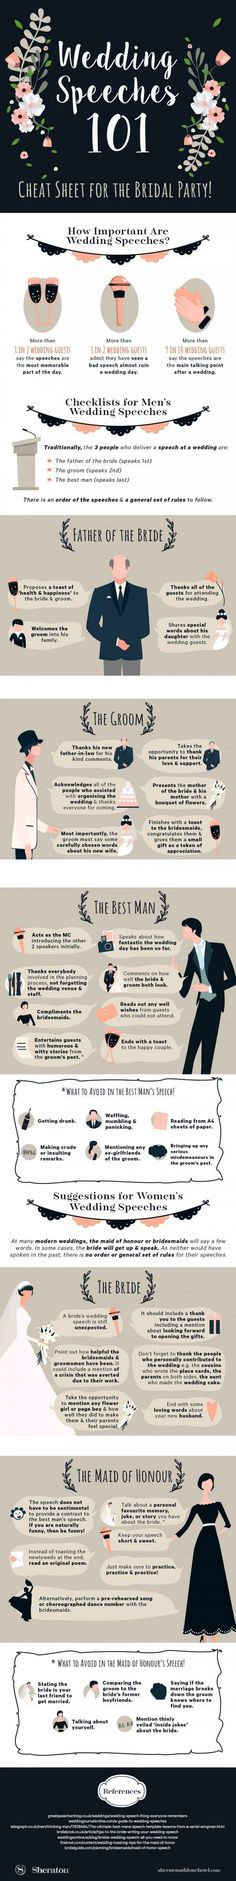 wedding speeches 101 infographic / http://www.deerpearlflowers.com/wedding-planning-infographics/5/ #weddingplanninginfographic #WeddingTips